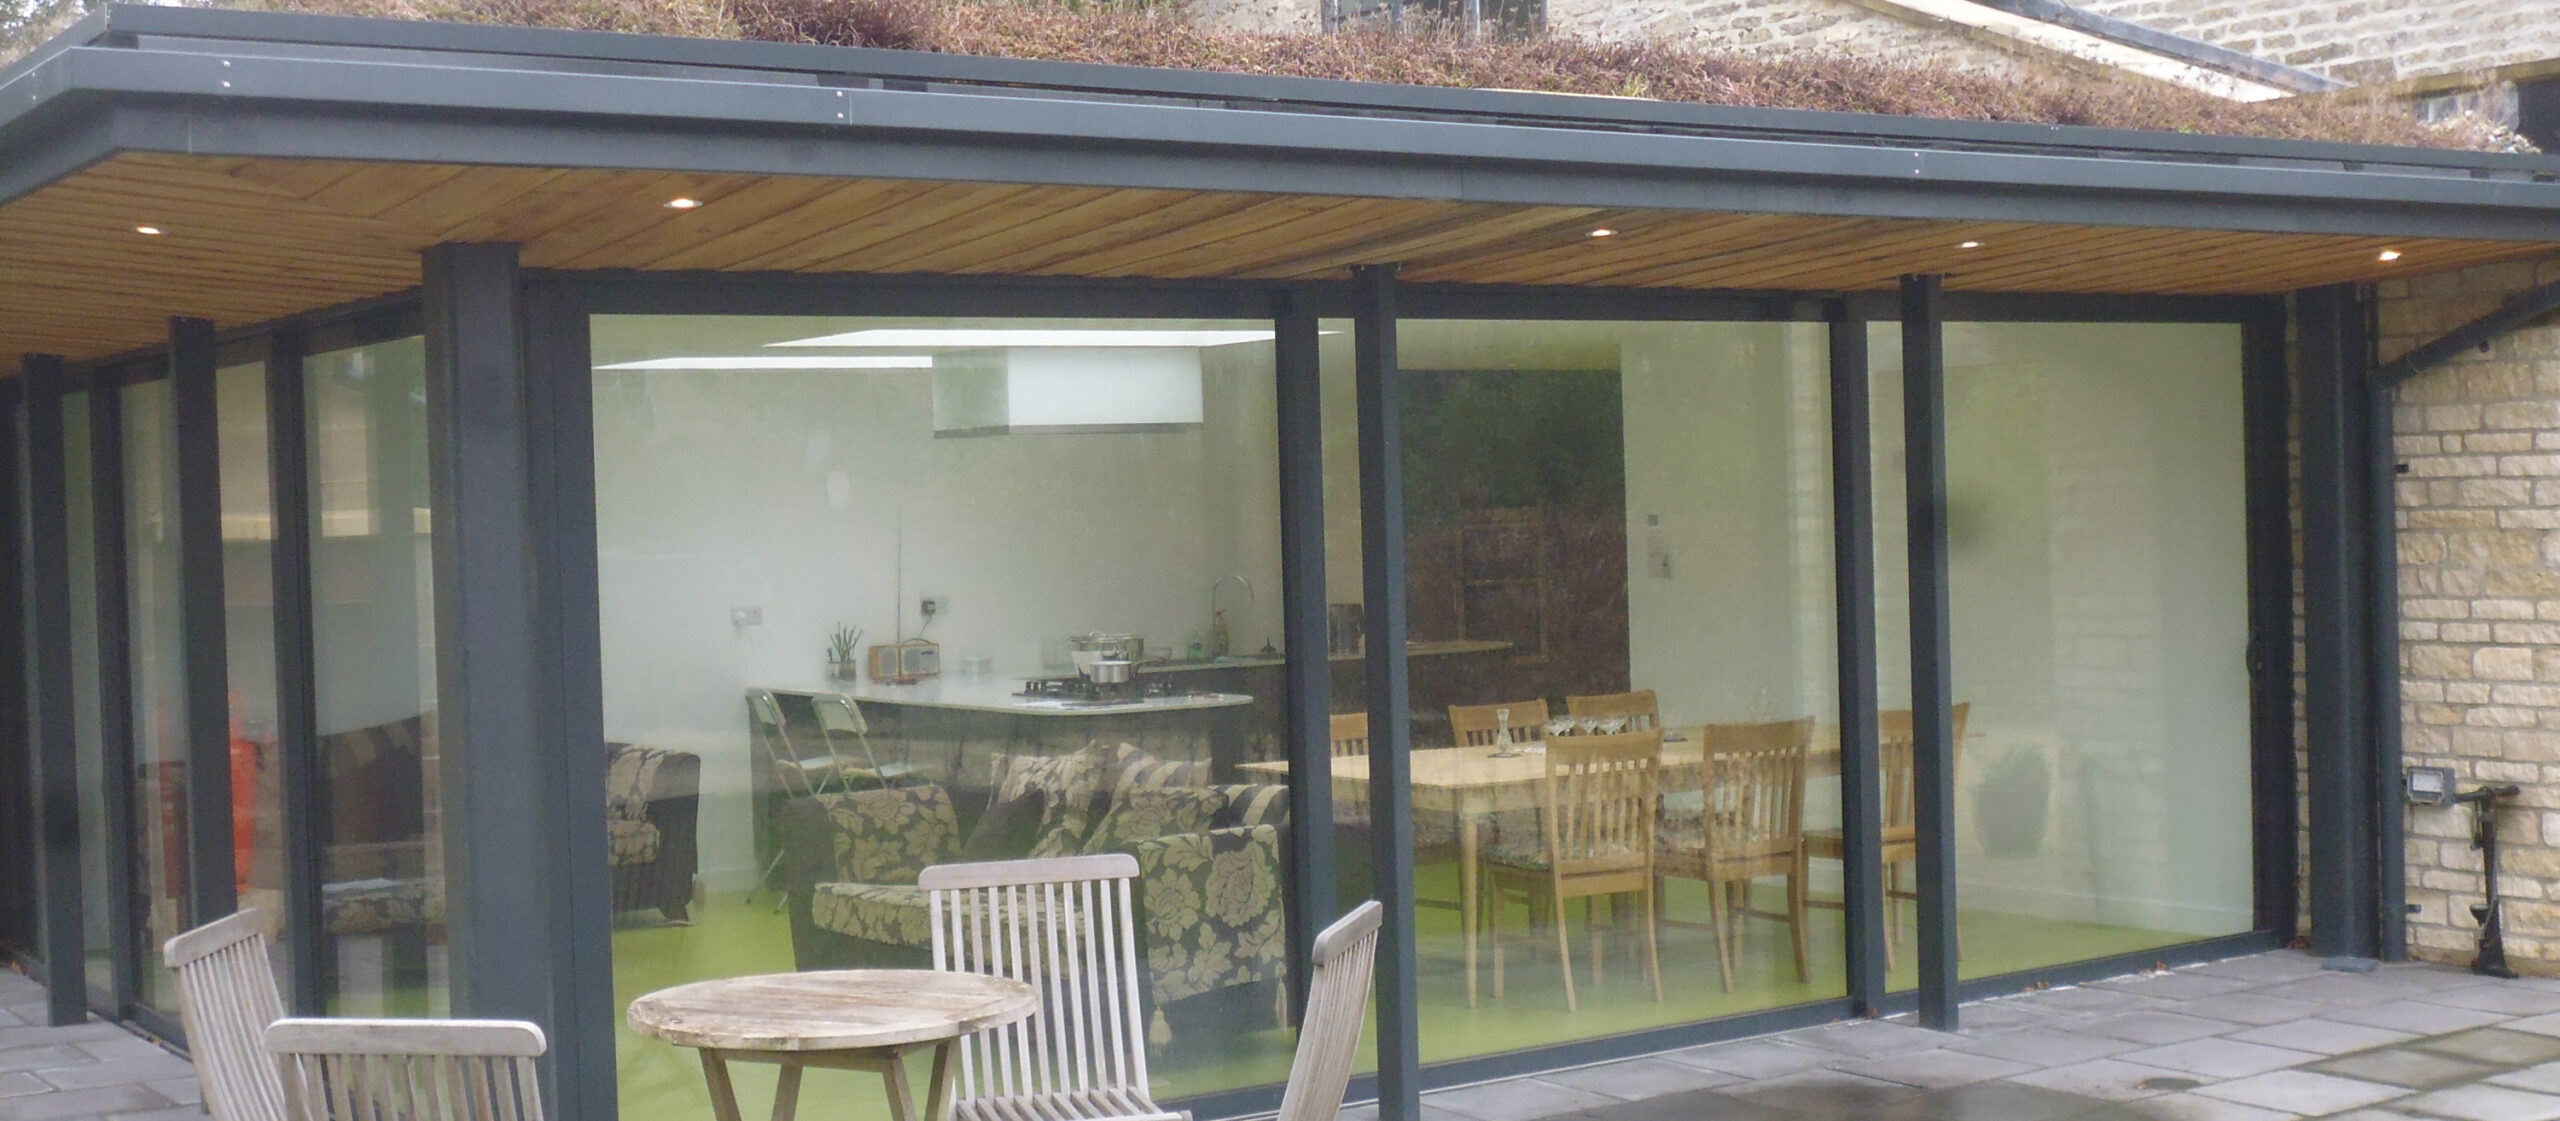 Aluminium Patio Doors in Anthracite Grey